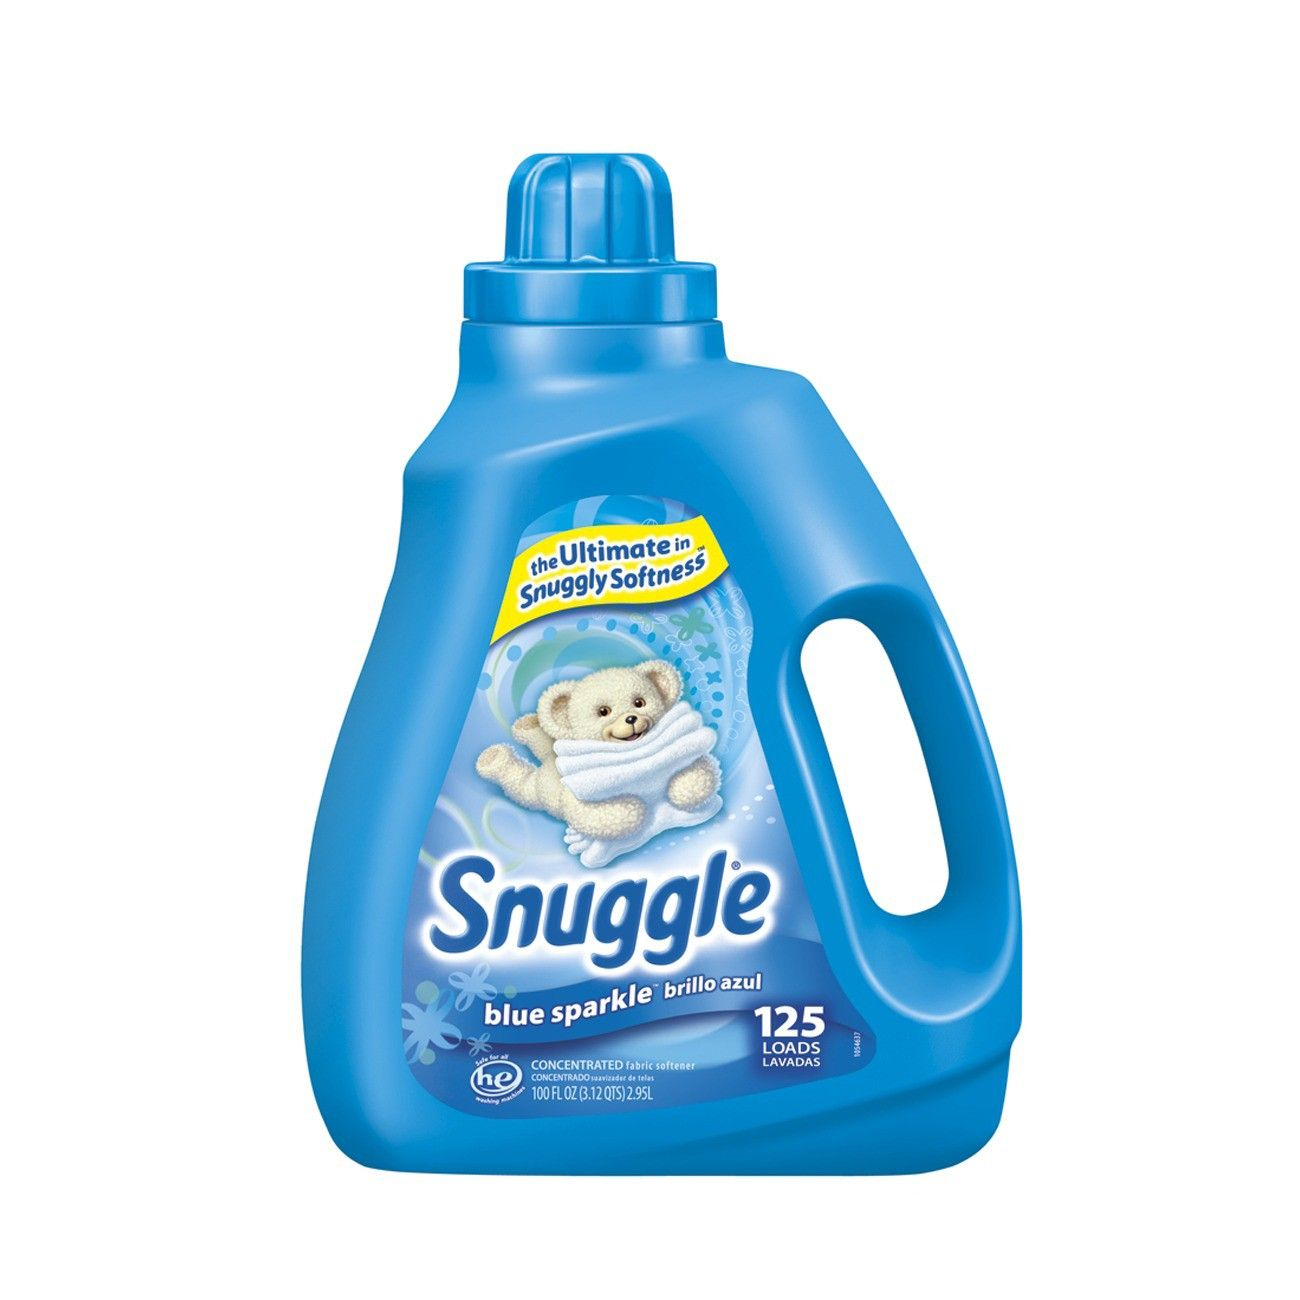 Snuggle Blue Sparkle Fabric Softener Wish They Made A Perfume